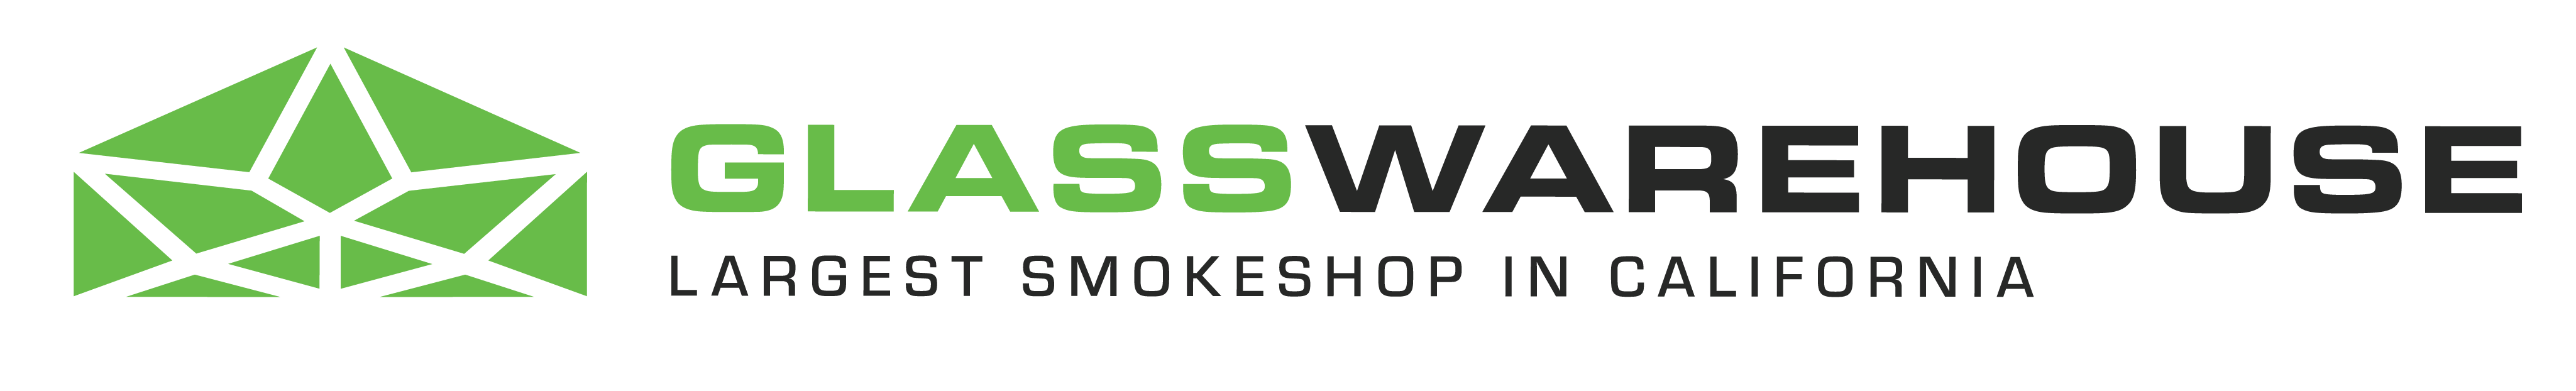 The Glass Warehouse, Top Selling Glass Pipes in San Diego, CA